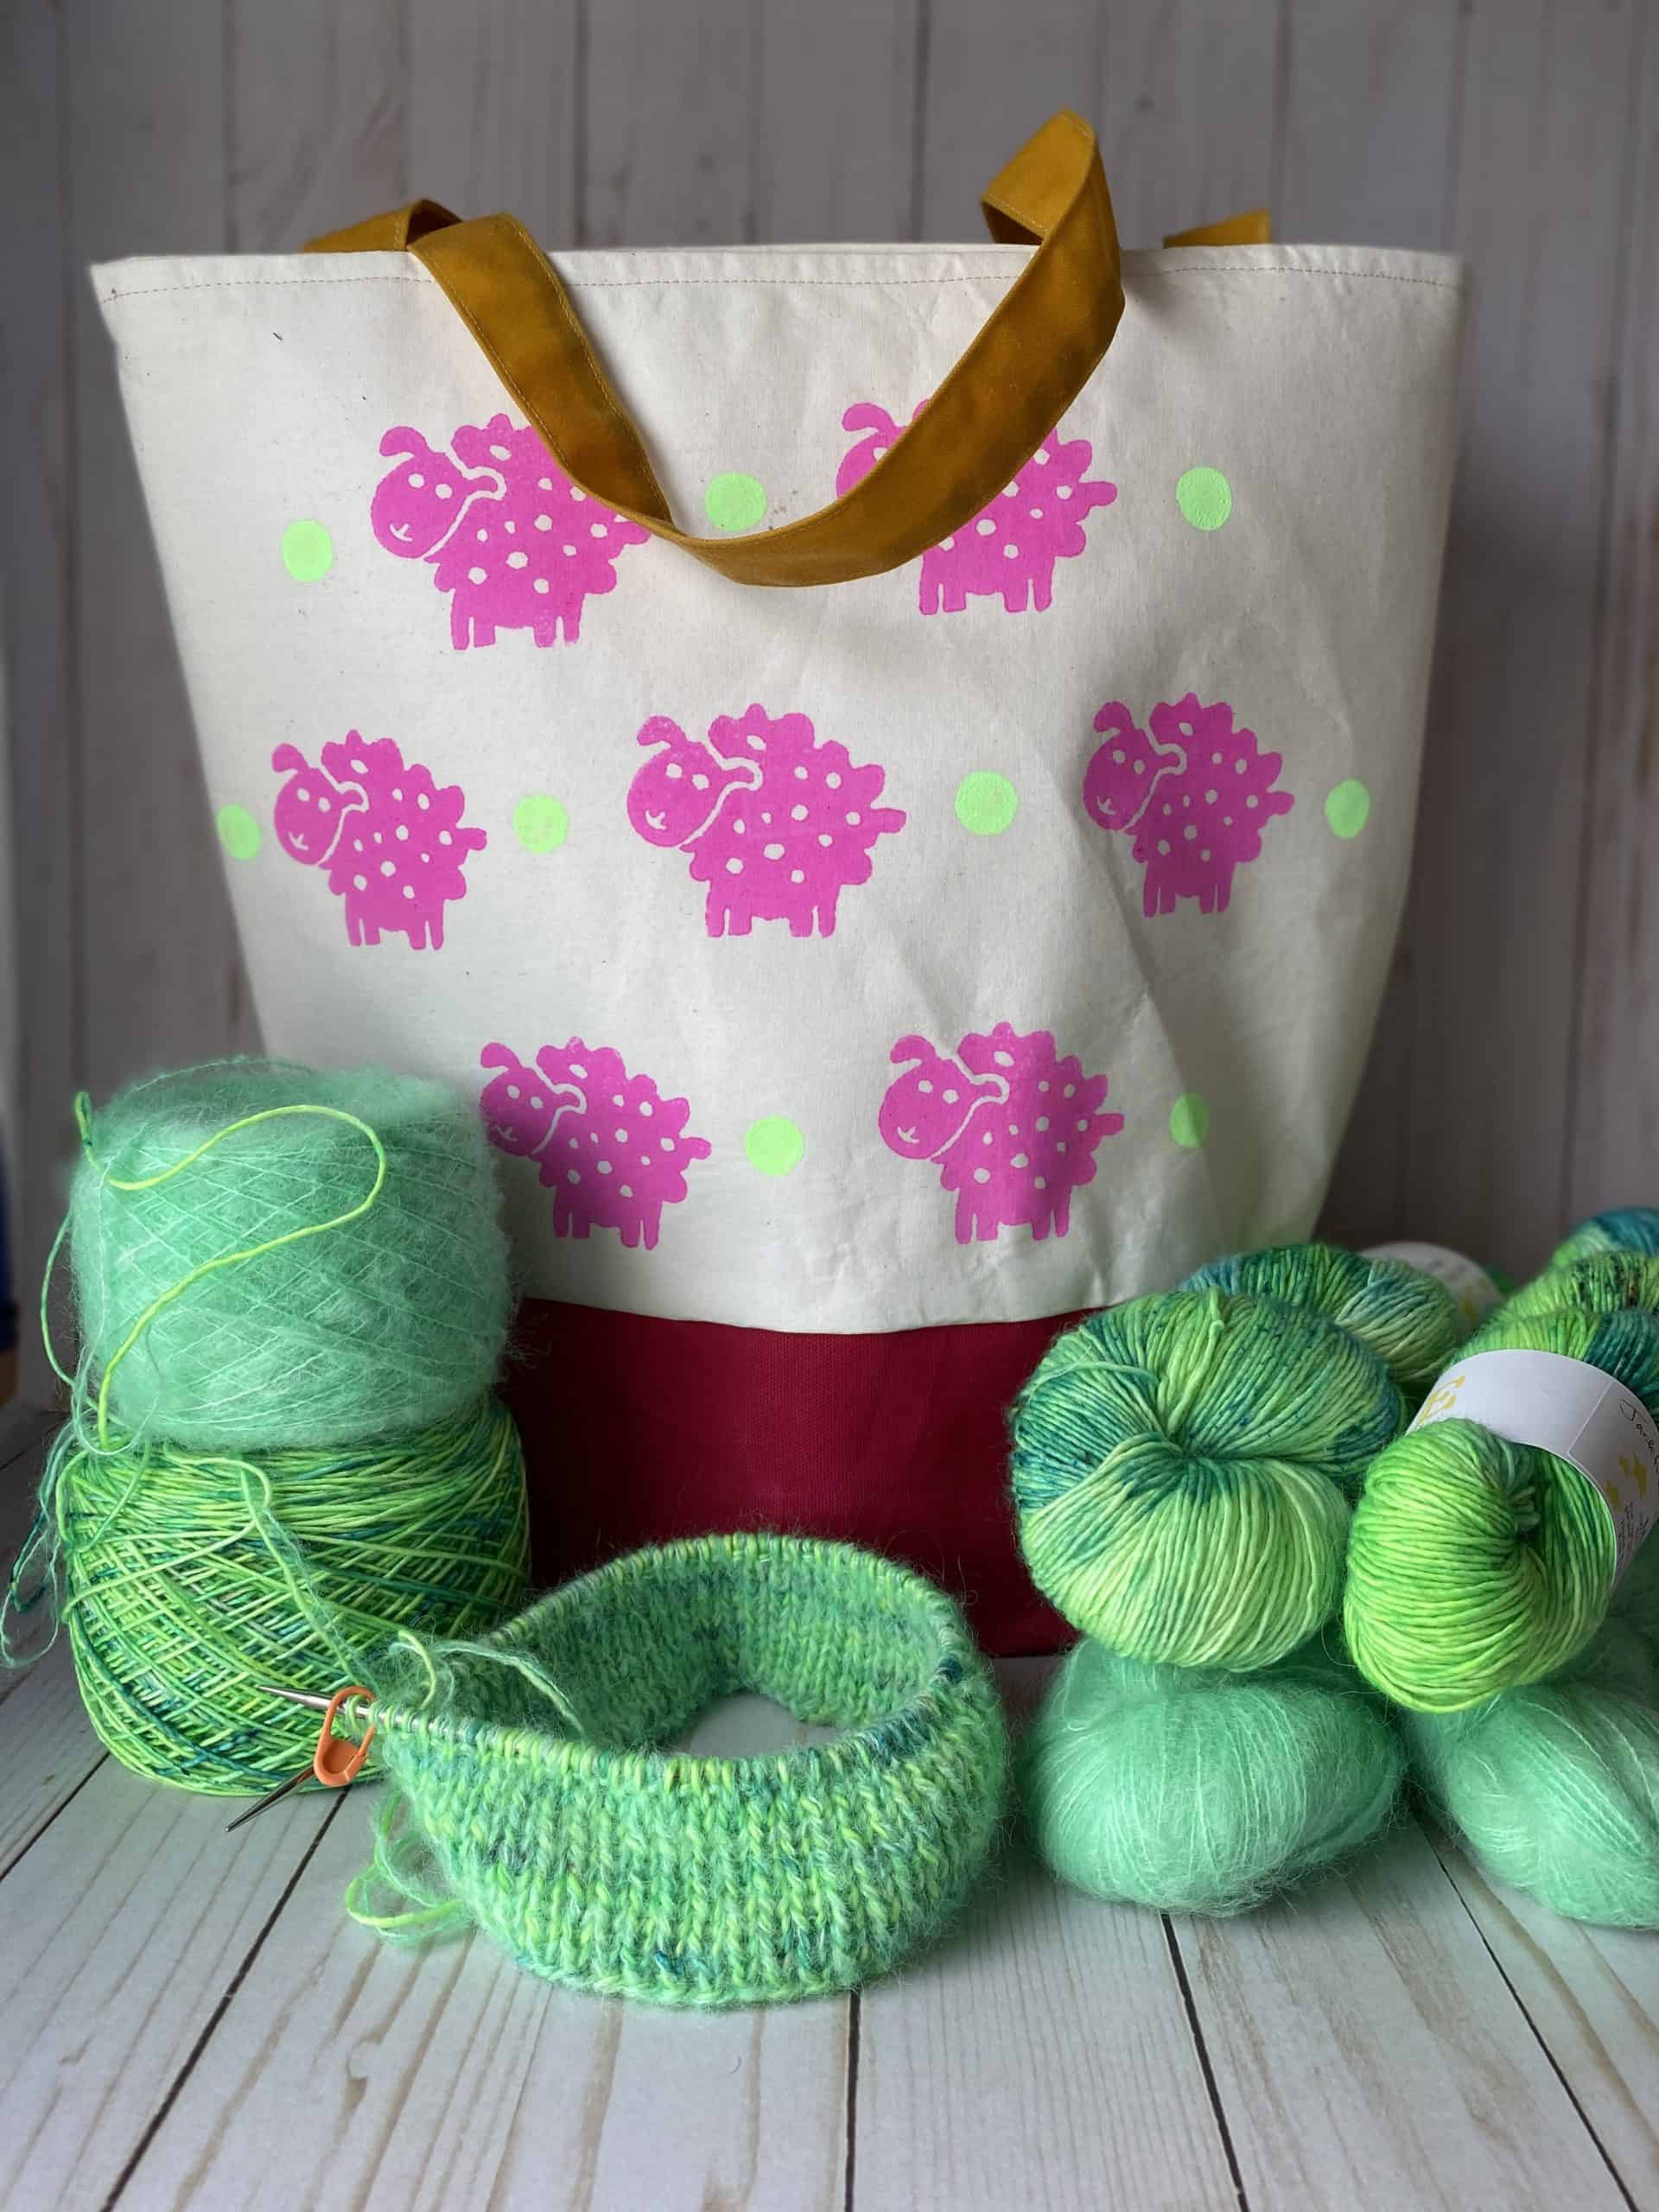 A white bag with magenta sheep surrounded by bright green yarn.